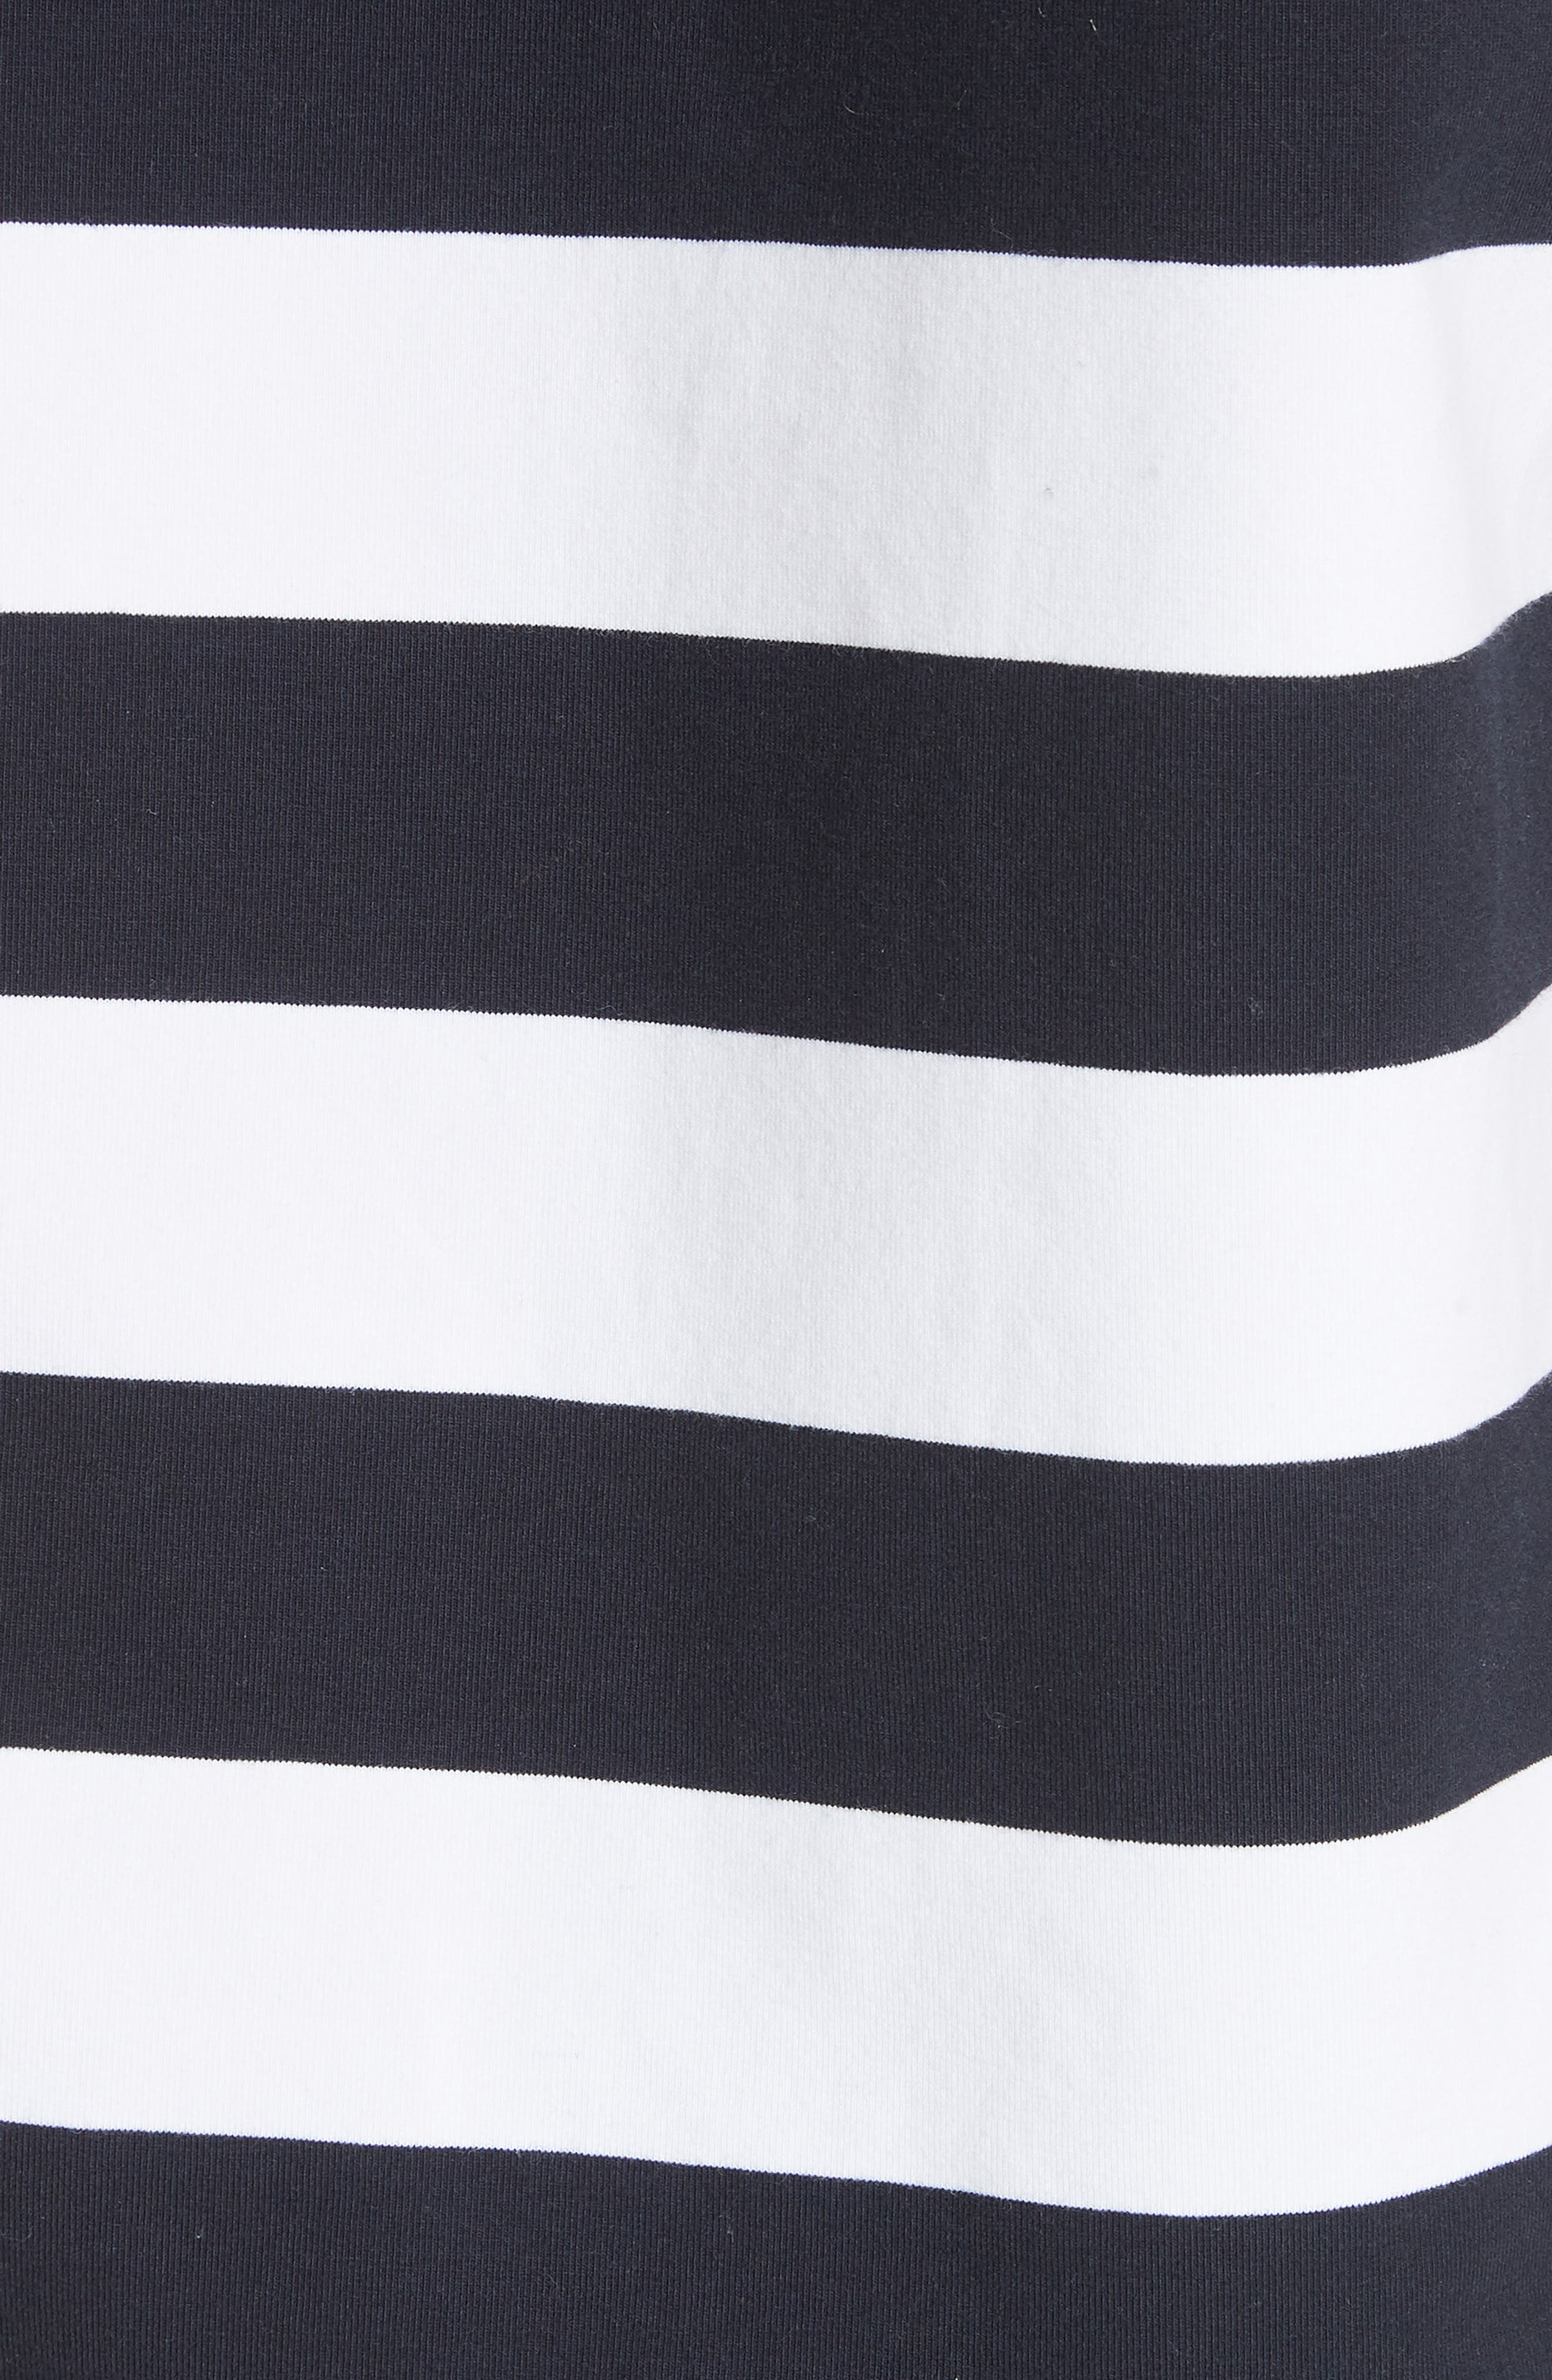 Muscle Stripe Stretch Cotton Tee,                             Alternate thumbnail 6, color,                             Navy/ White Multi